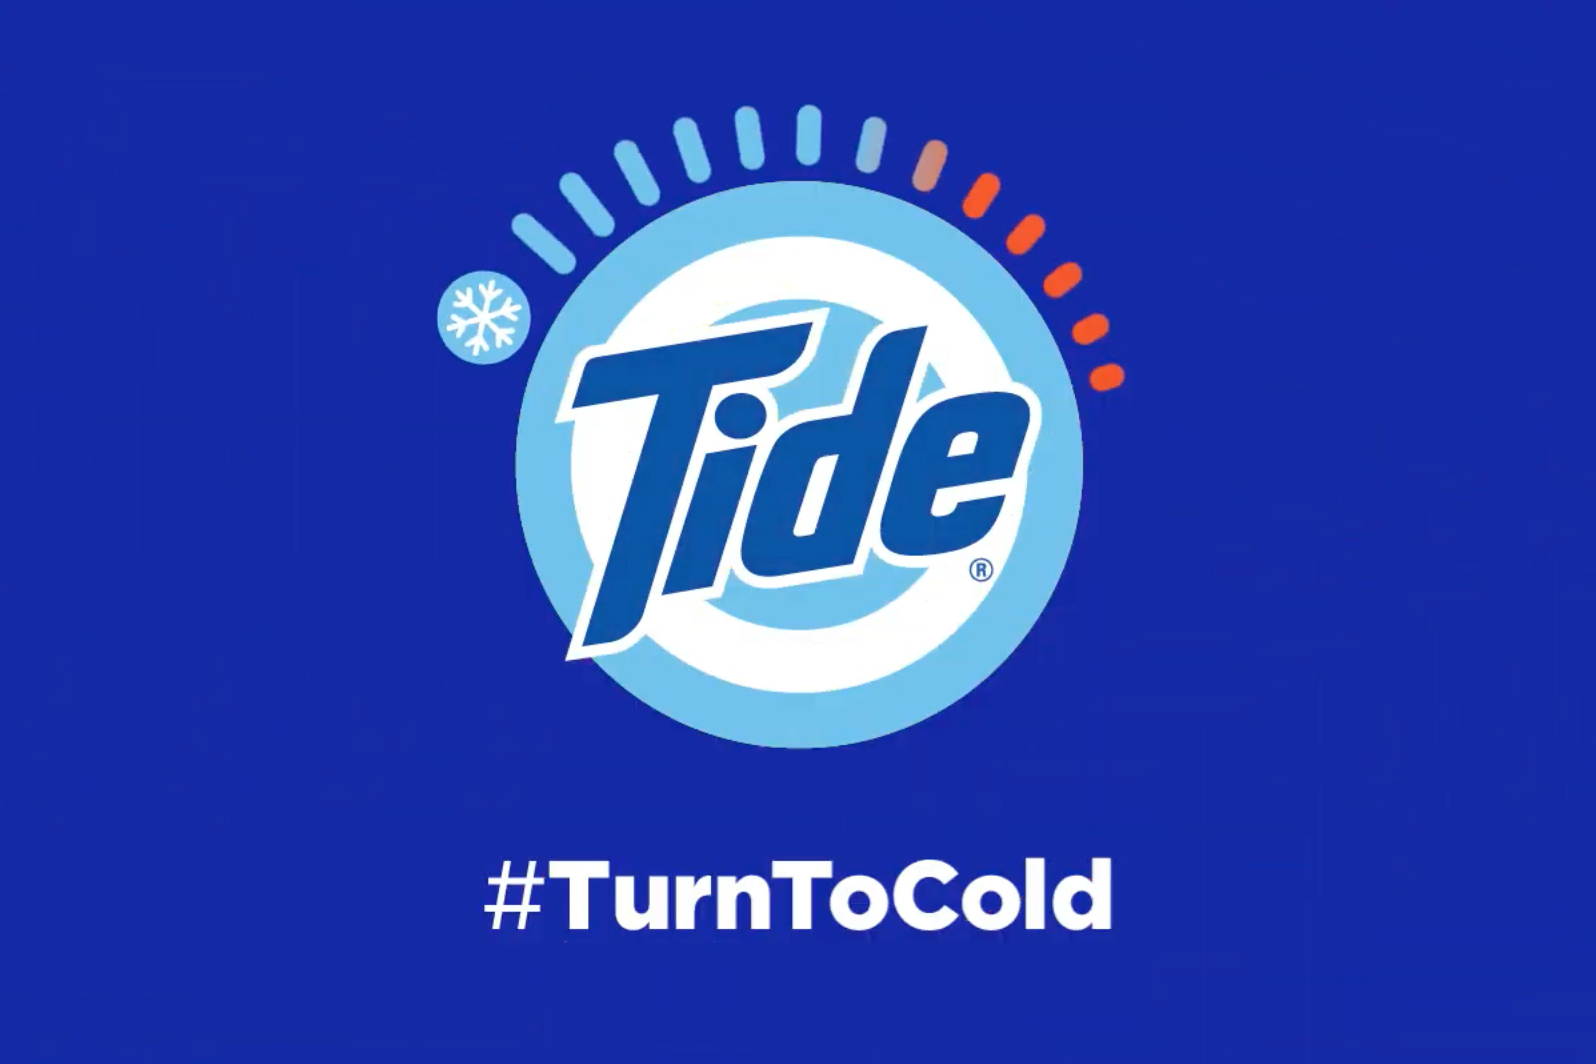 Tide wants consumers to wash clothes in cold, making green pitch a key part of 10-year marketing plan